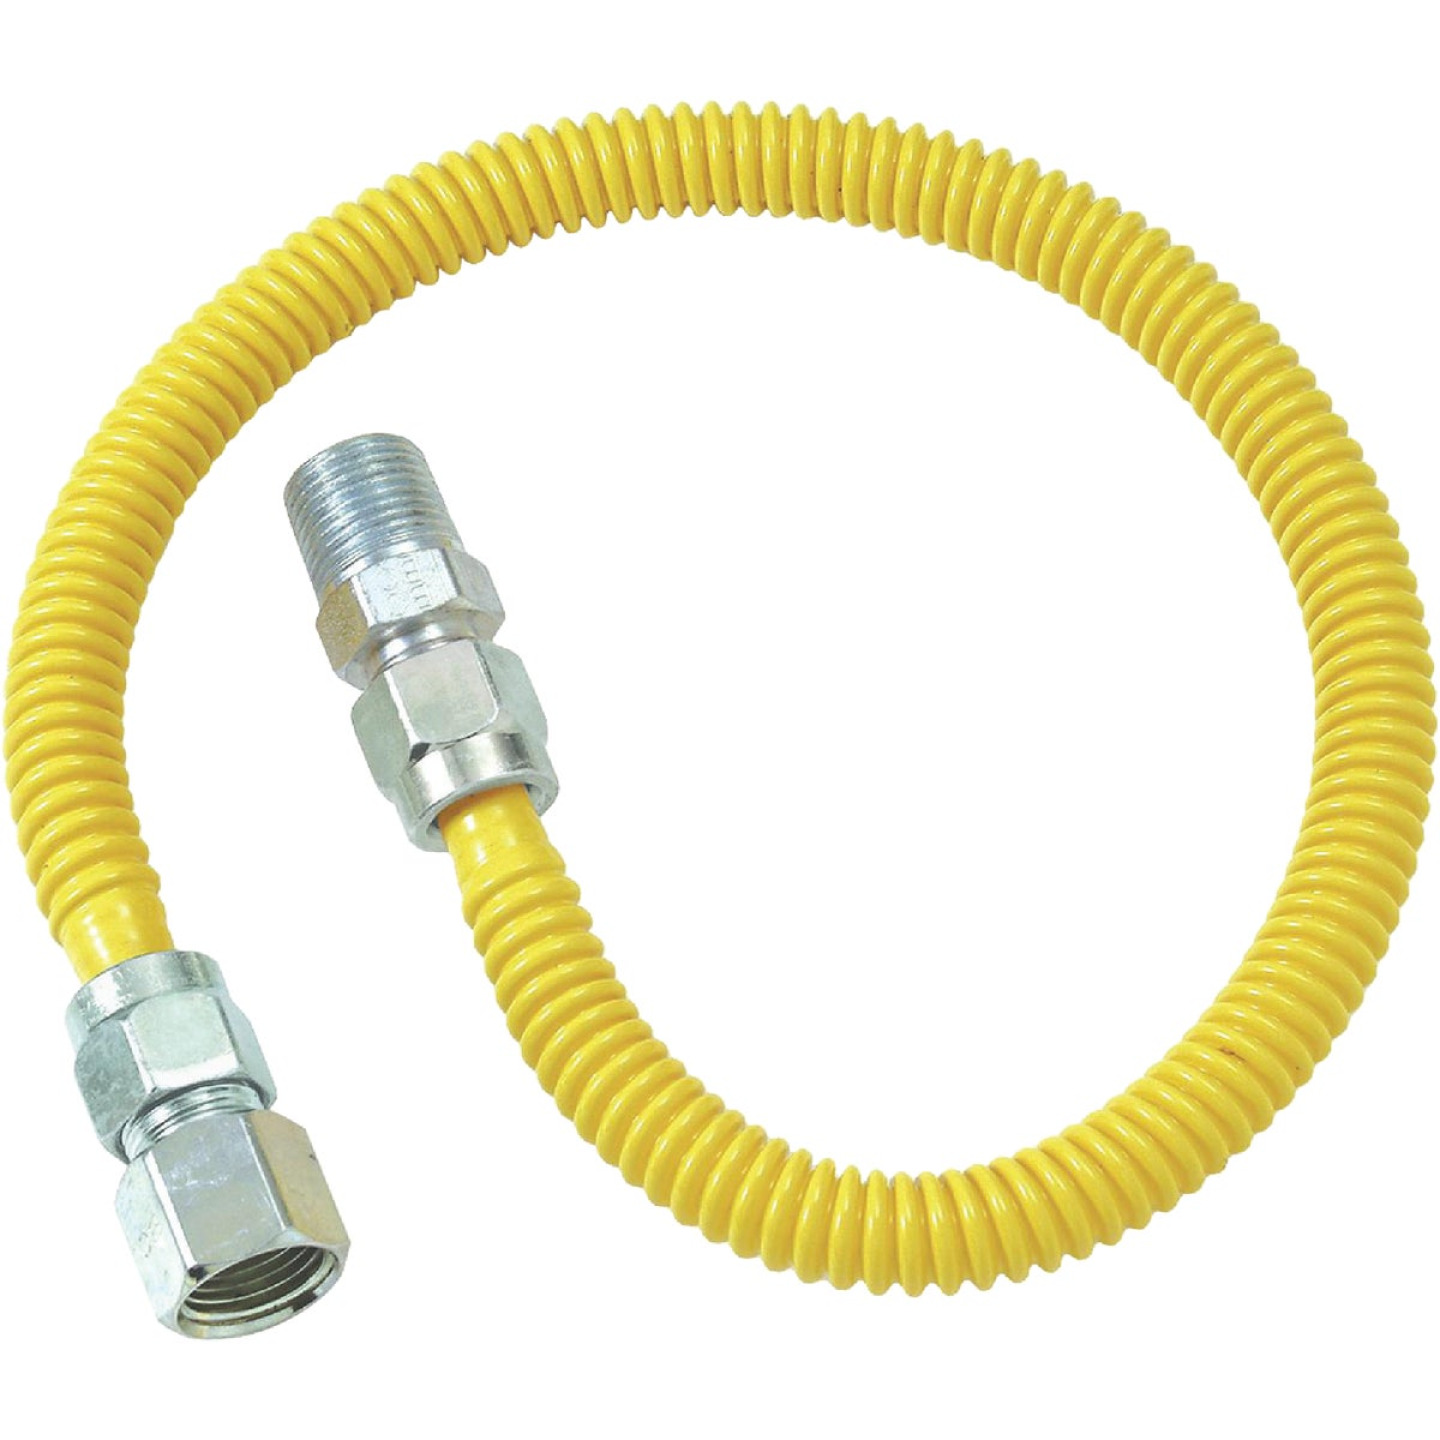 Dormont 1/2 In. OD x 36 In. Coated Stainless Steel Gas Connector, 1/2 In. FIP x 1/2 In. MIP (Tapped 3/8 In. FIP) Image 1